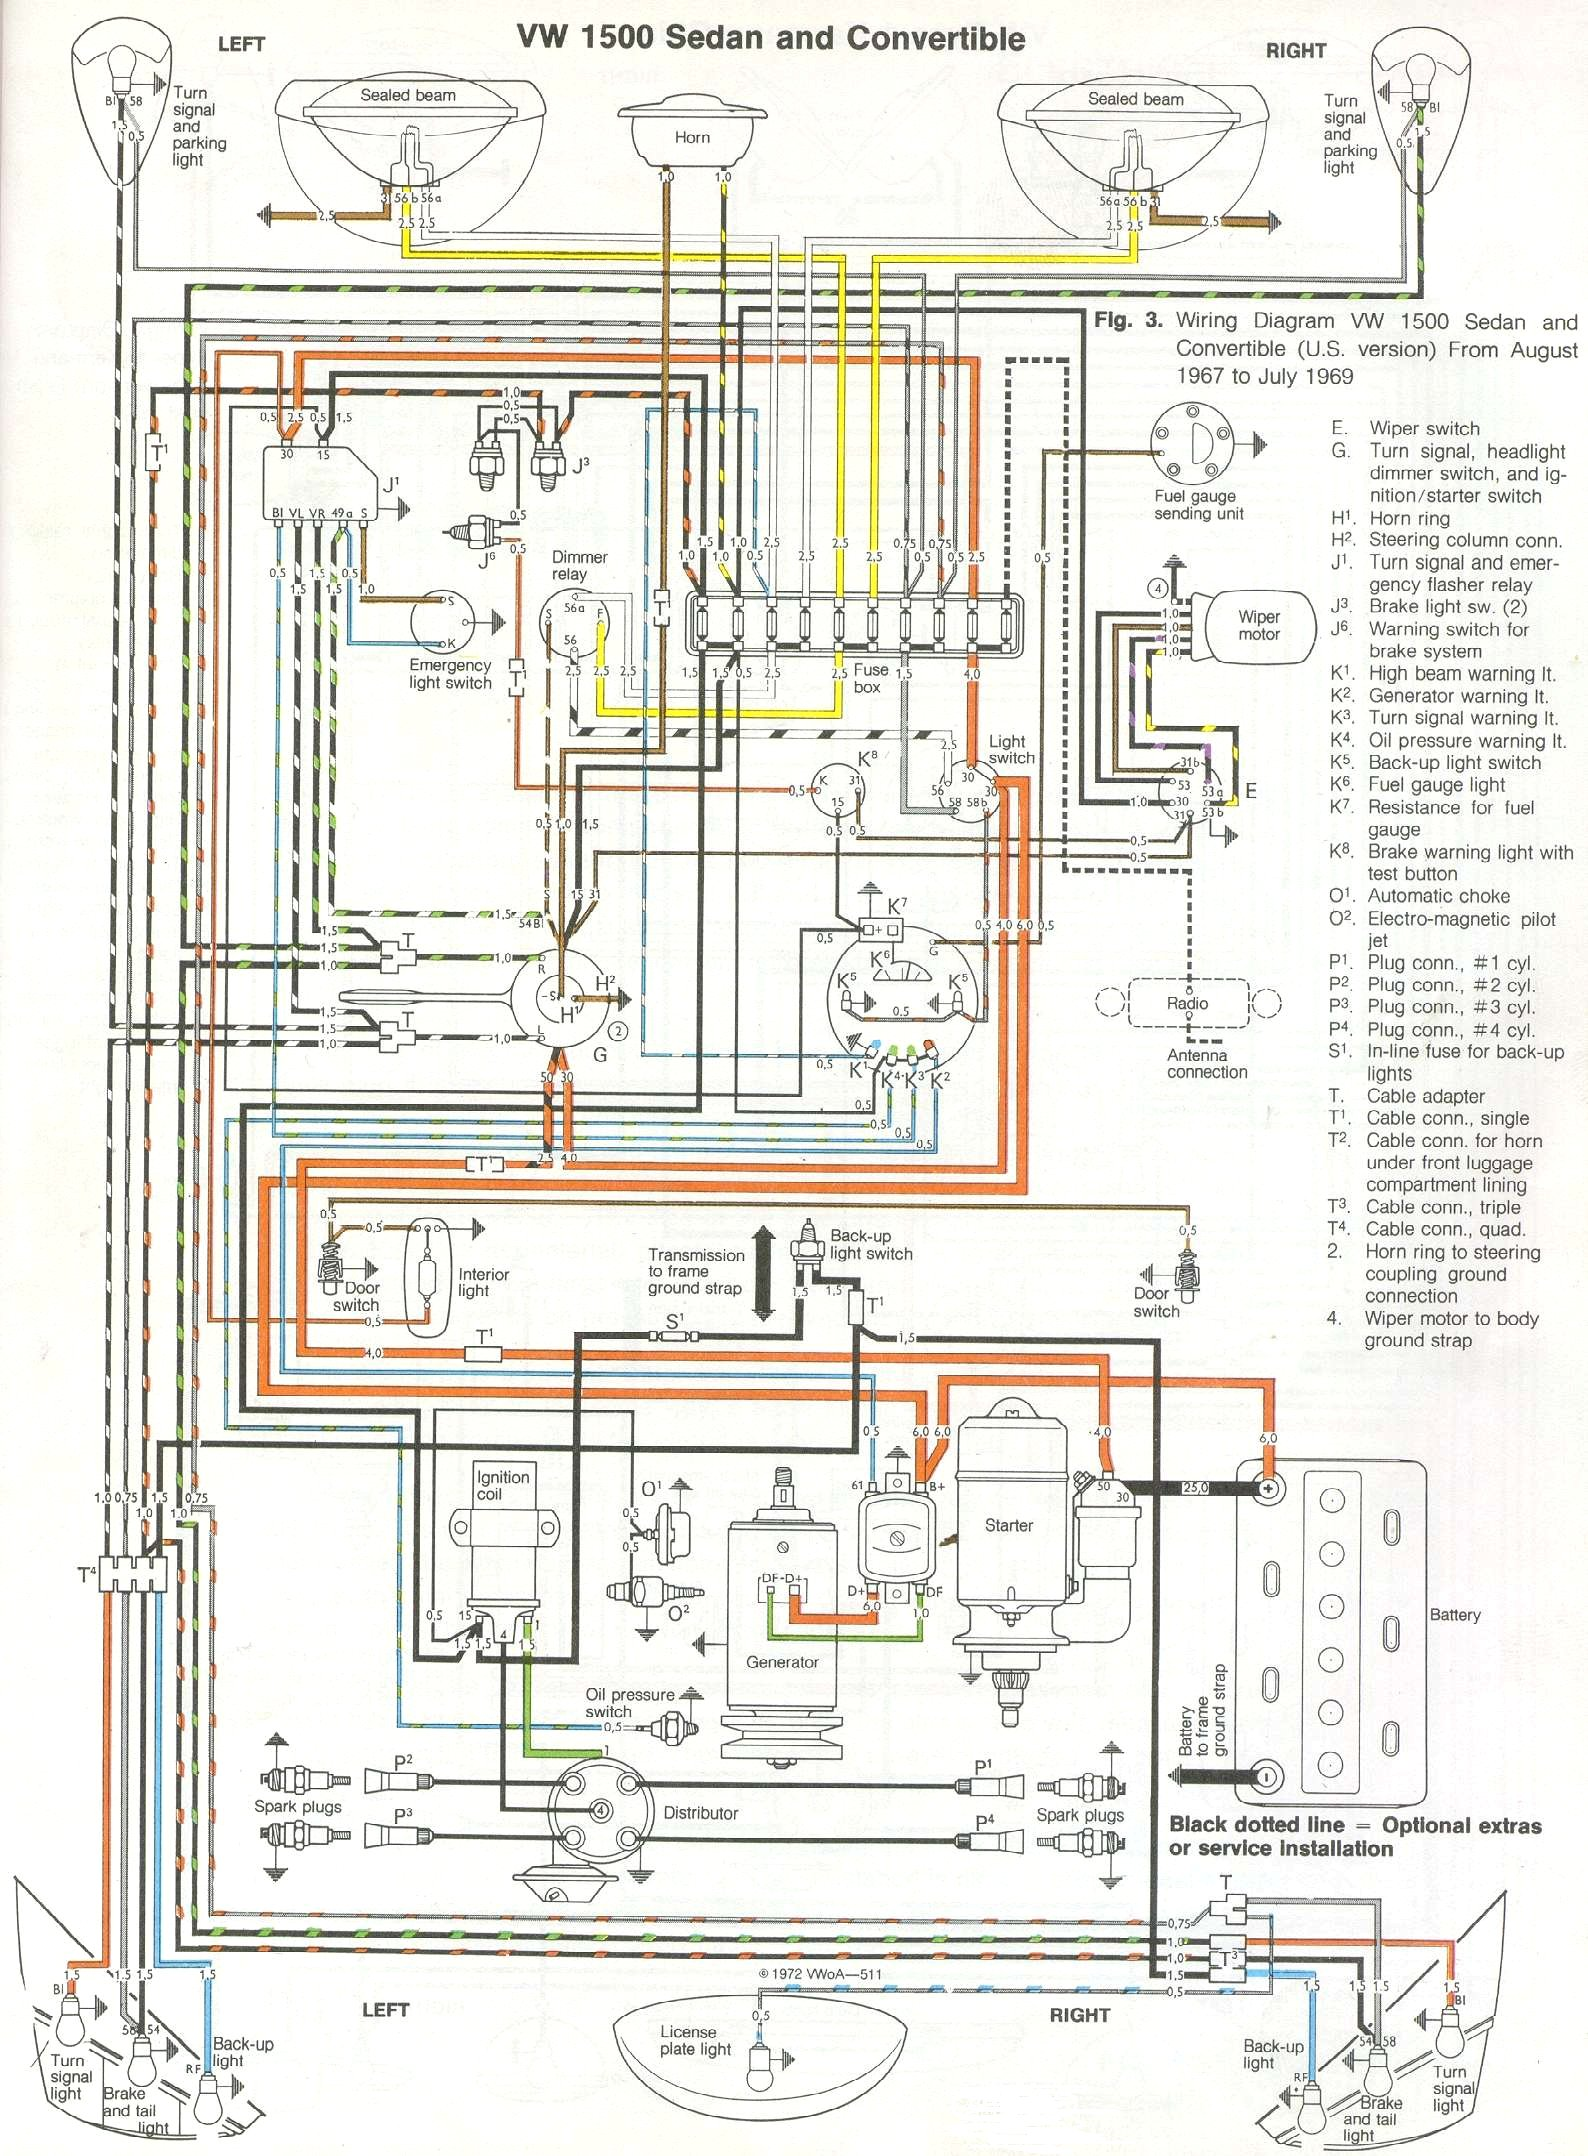 1969 Vw Wiring Diagram Will Be A Thing Sinski 71 Beetle Thegoldenbug Com 1968 For Headlight Switch Bug